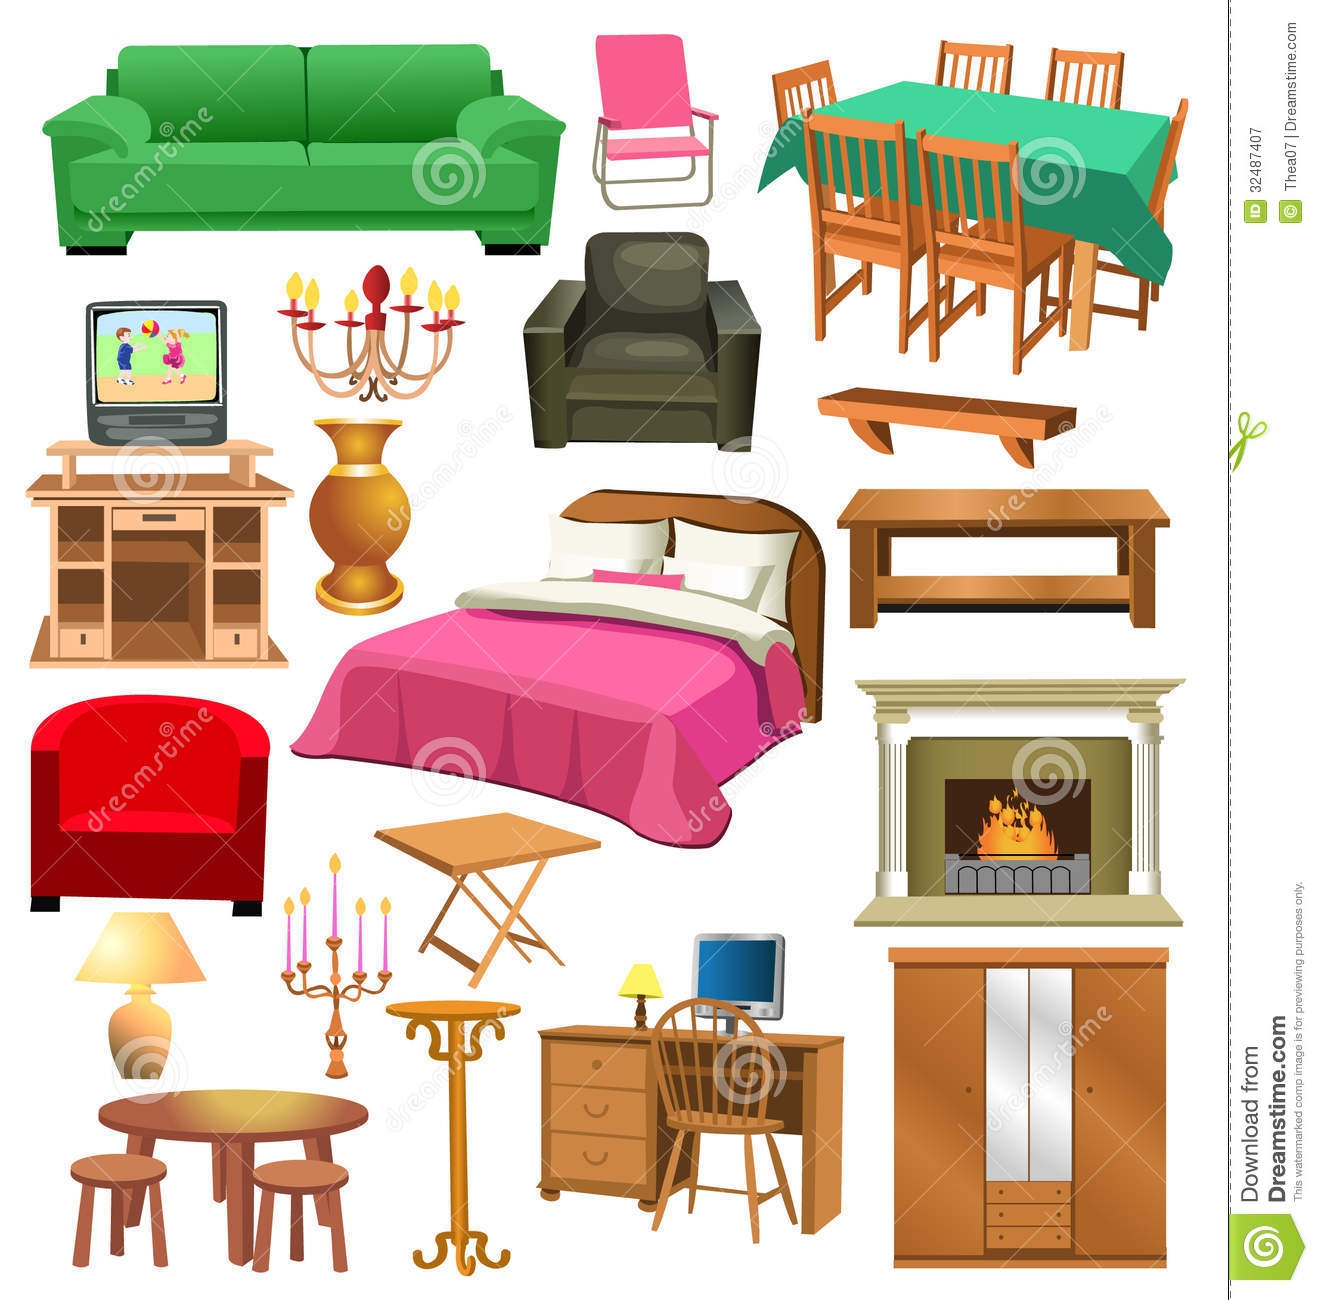 Room clipart background #12